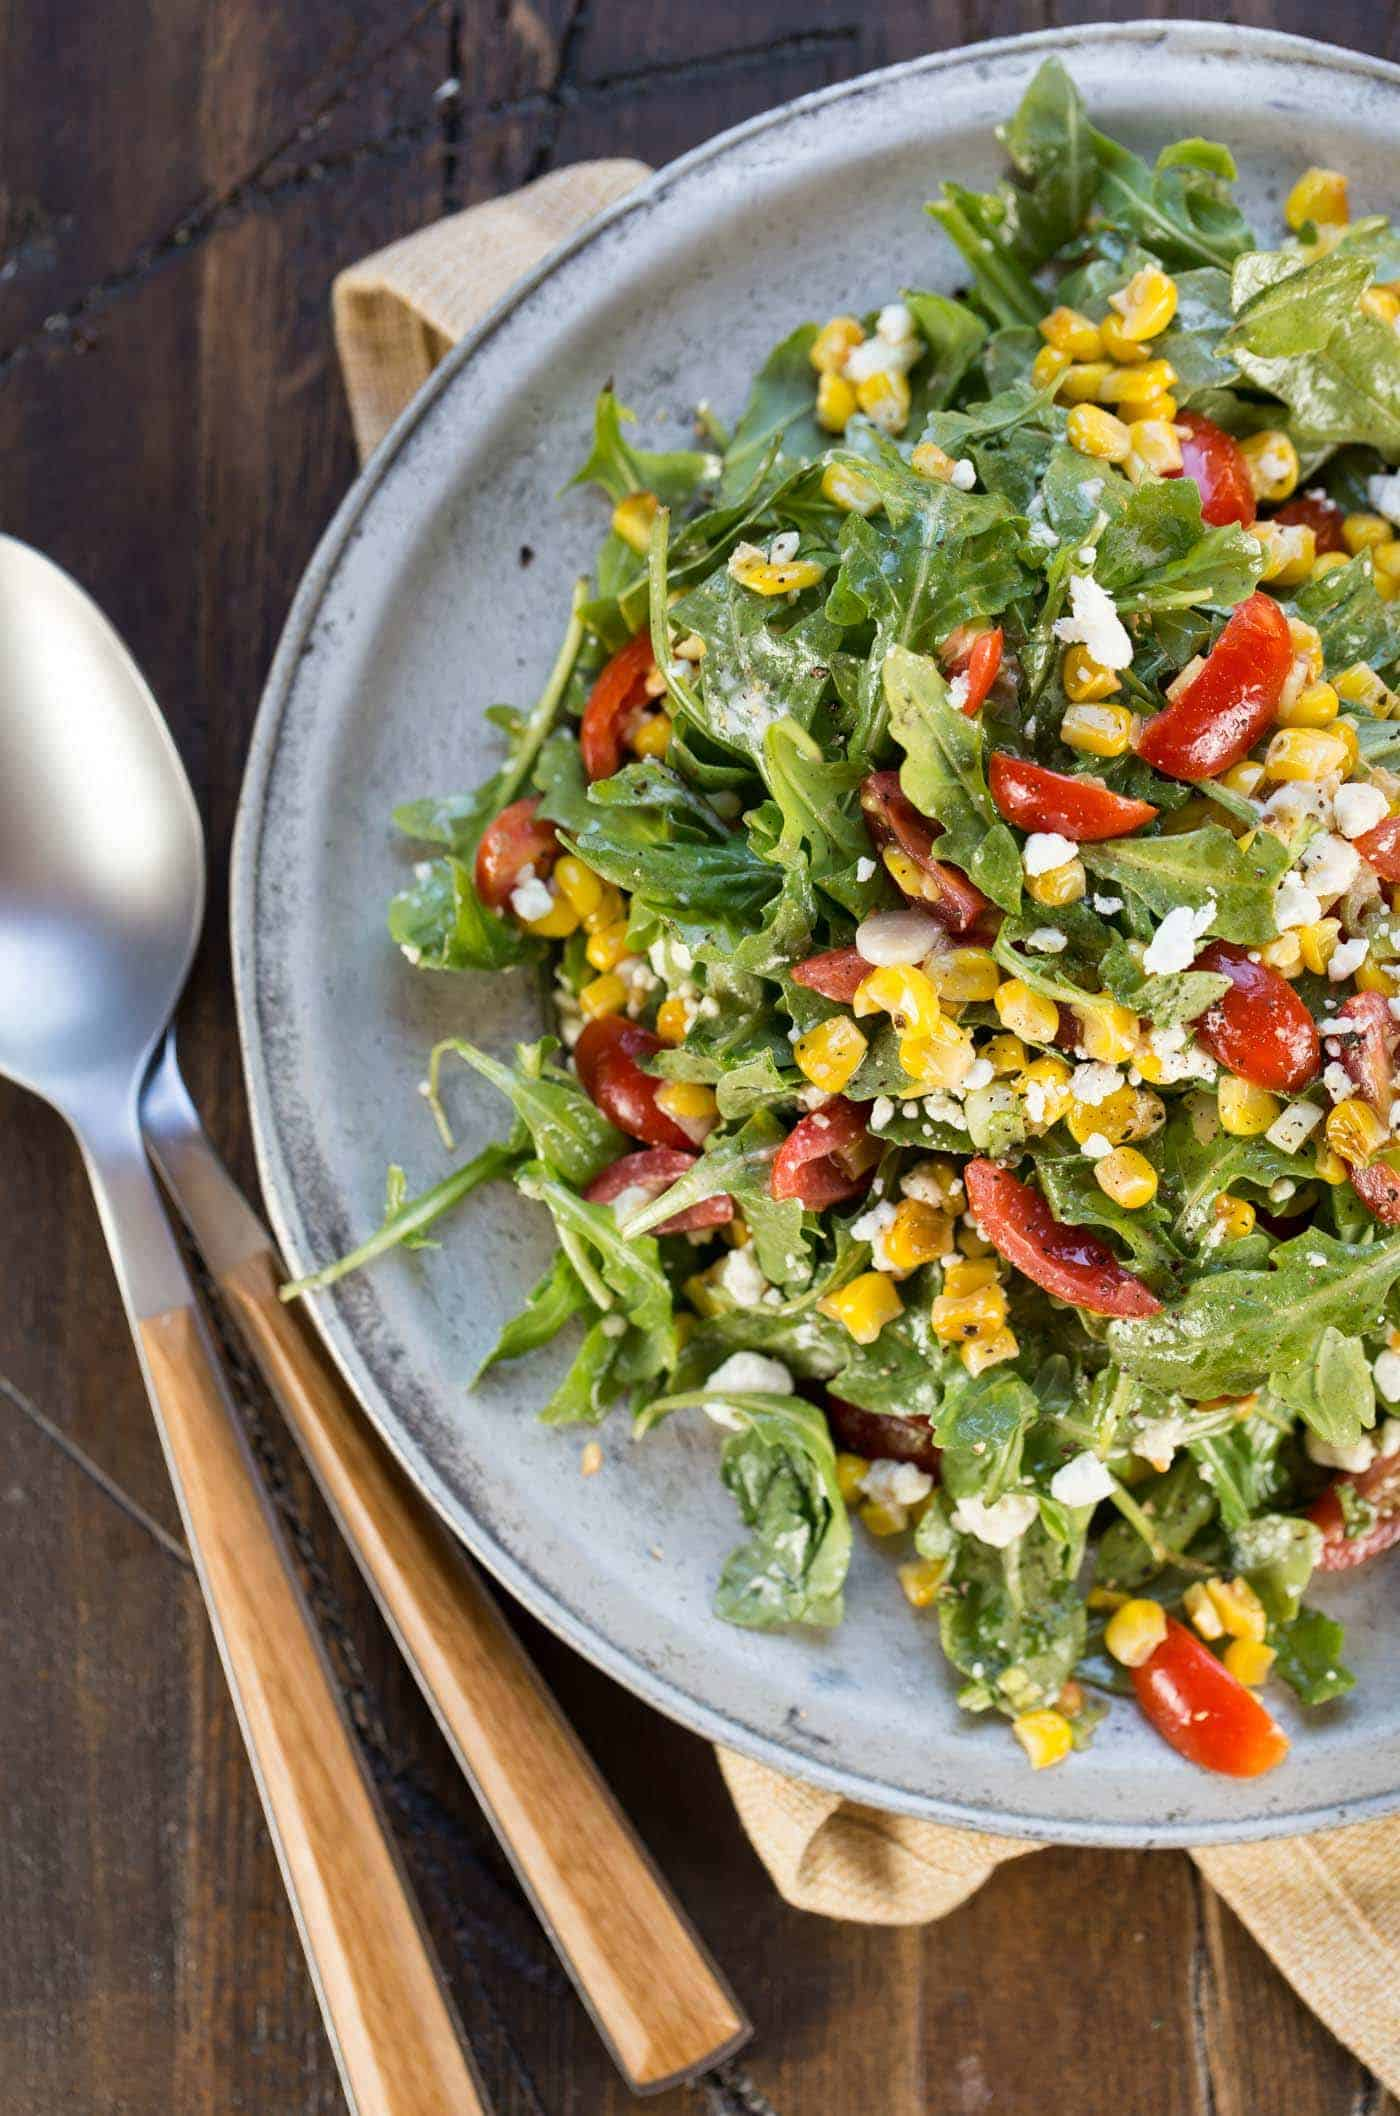 A silver plate mounded with Arugula Corn Goat Cheese Salad.